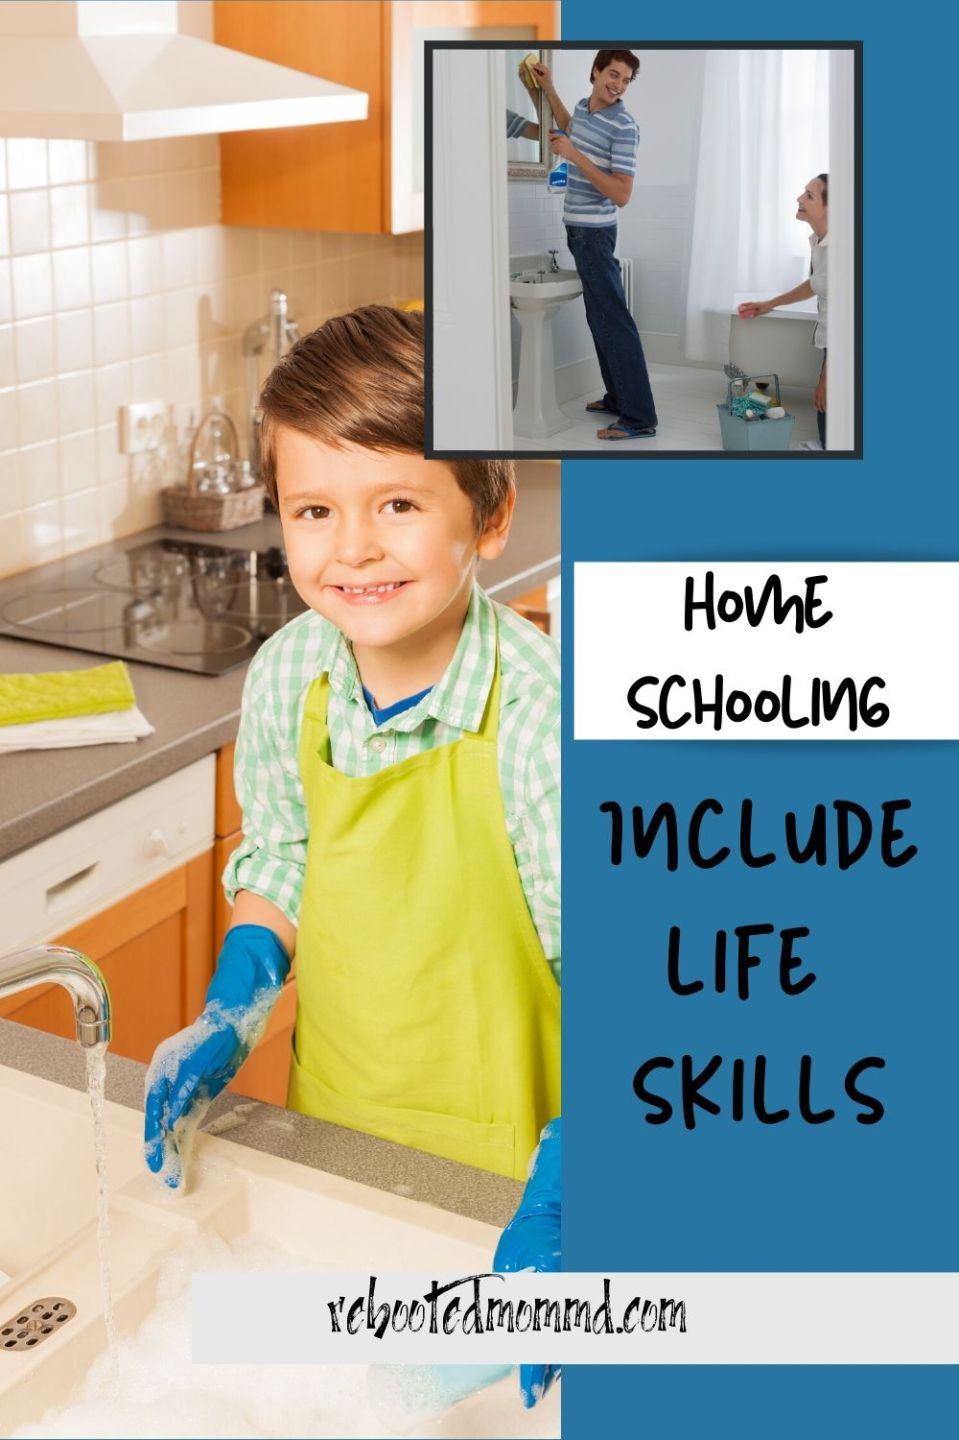 Homeschooling: Include Some Life Skills Too